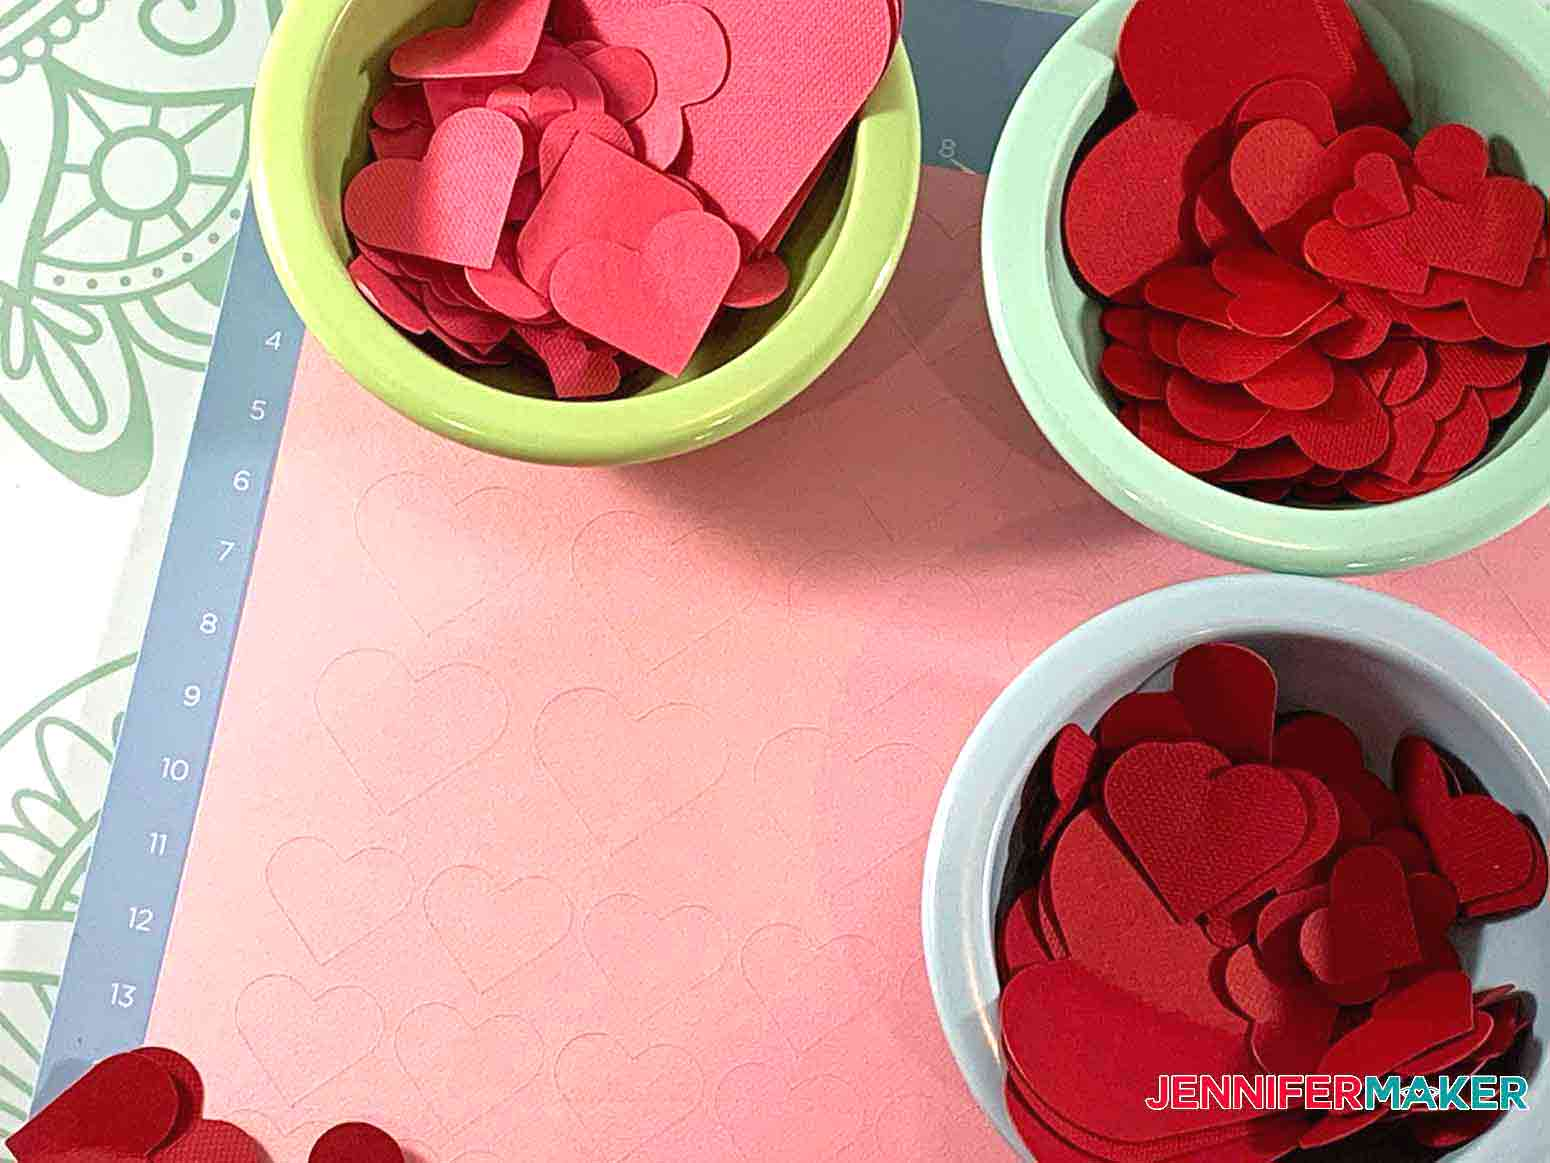 Paper Hearts cutout on Cricut LightGrip mat in four different shades of red for Easy Paper Heart Tree by JenniferMaker